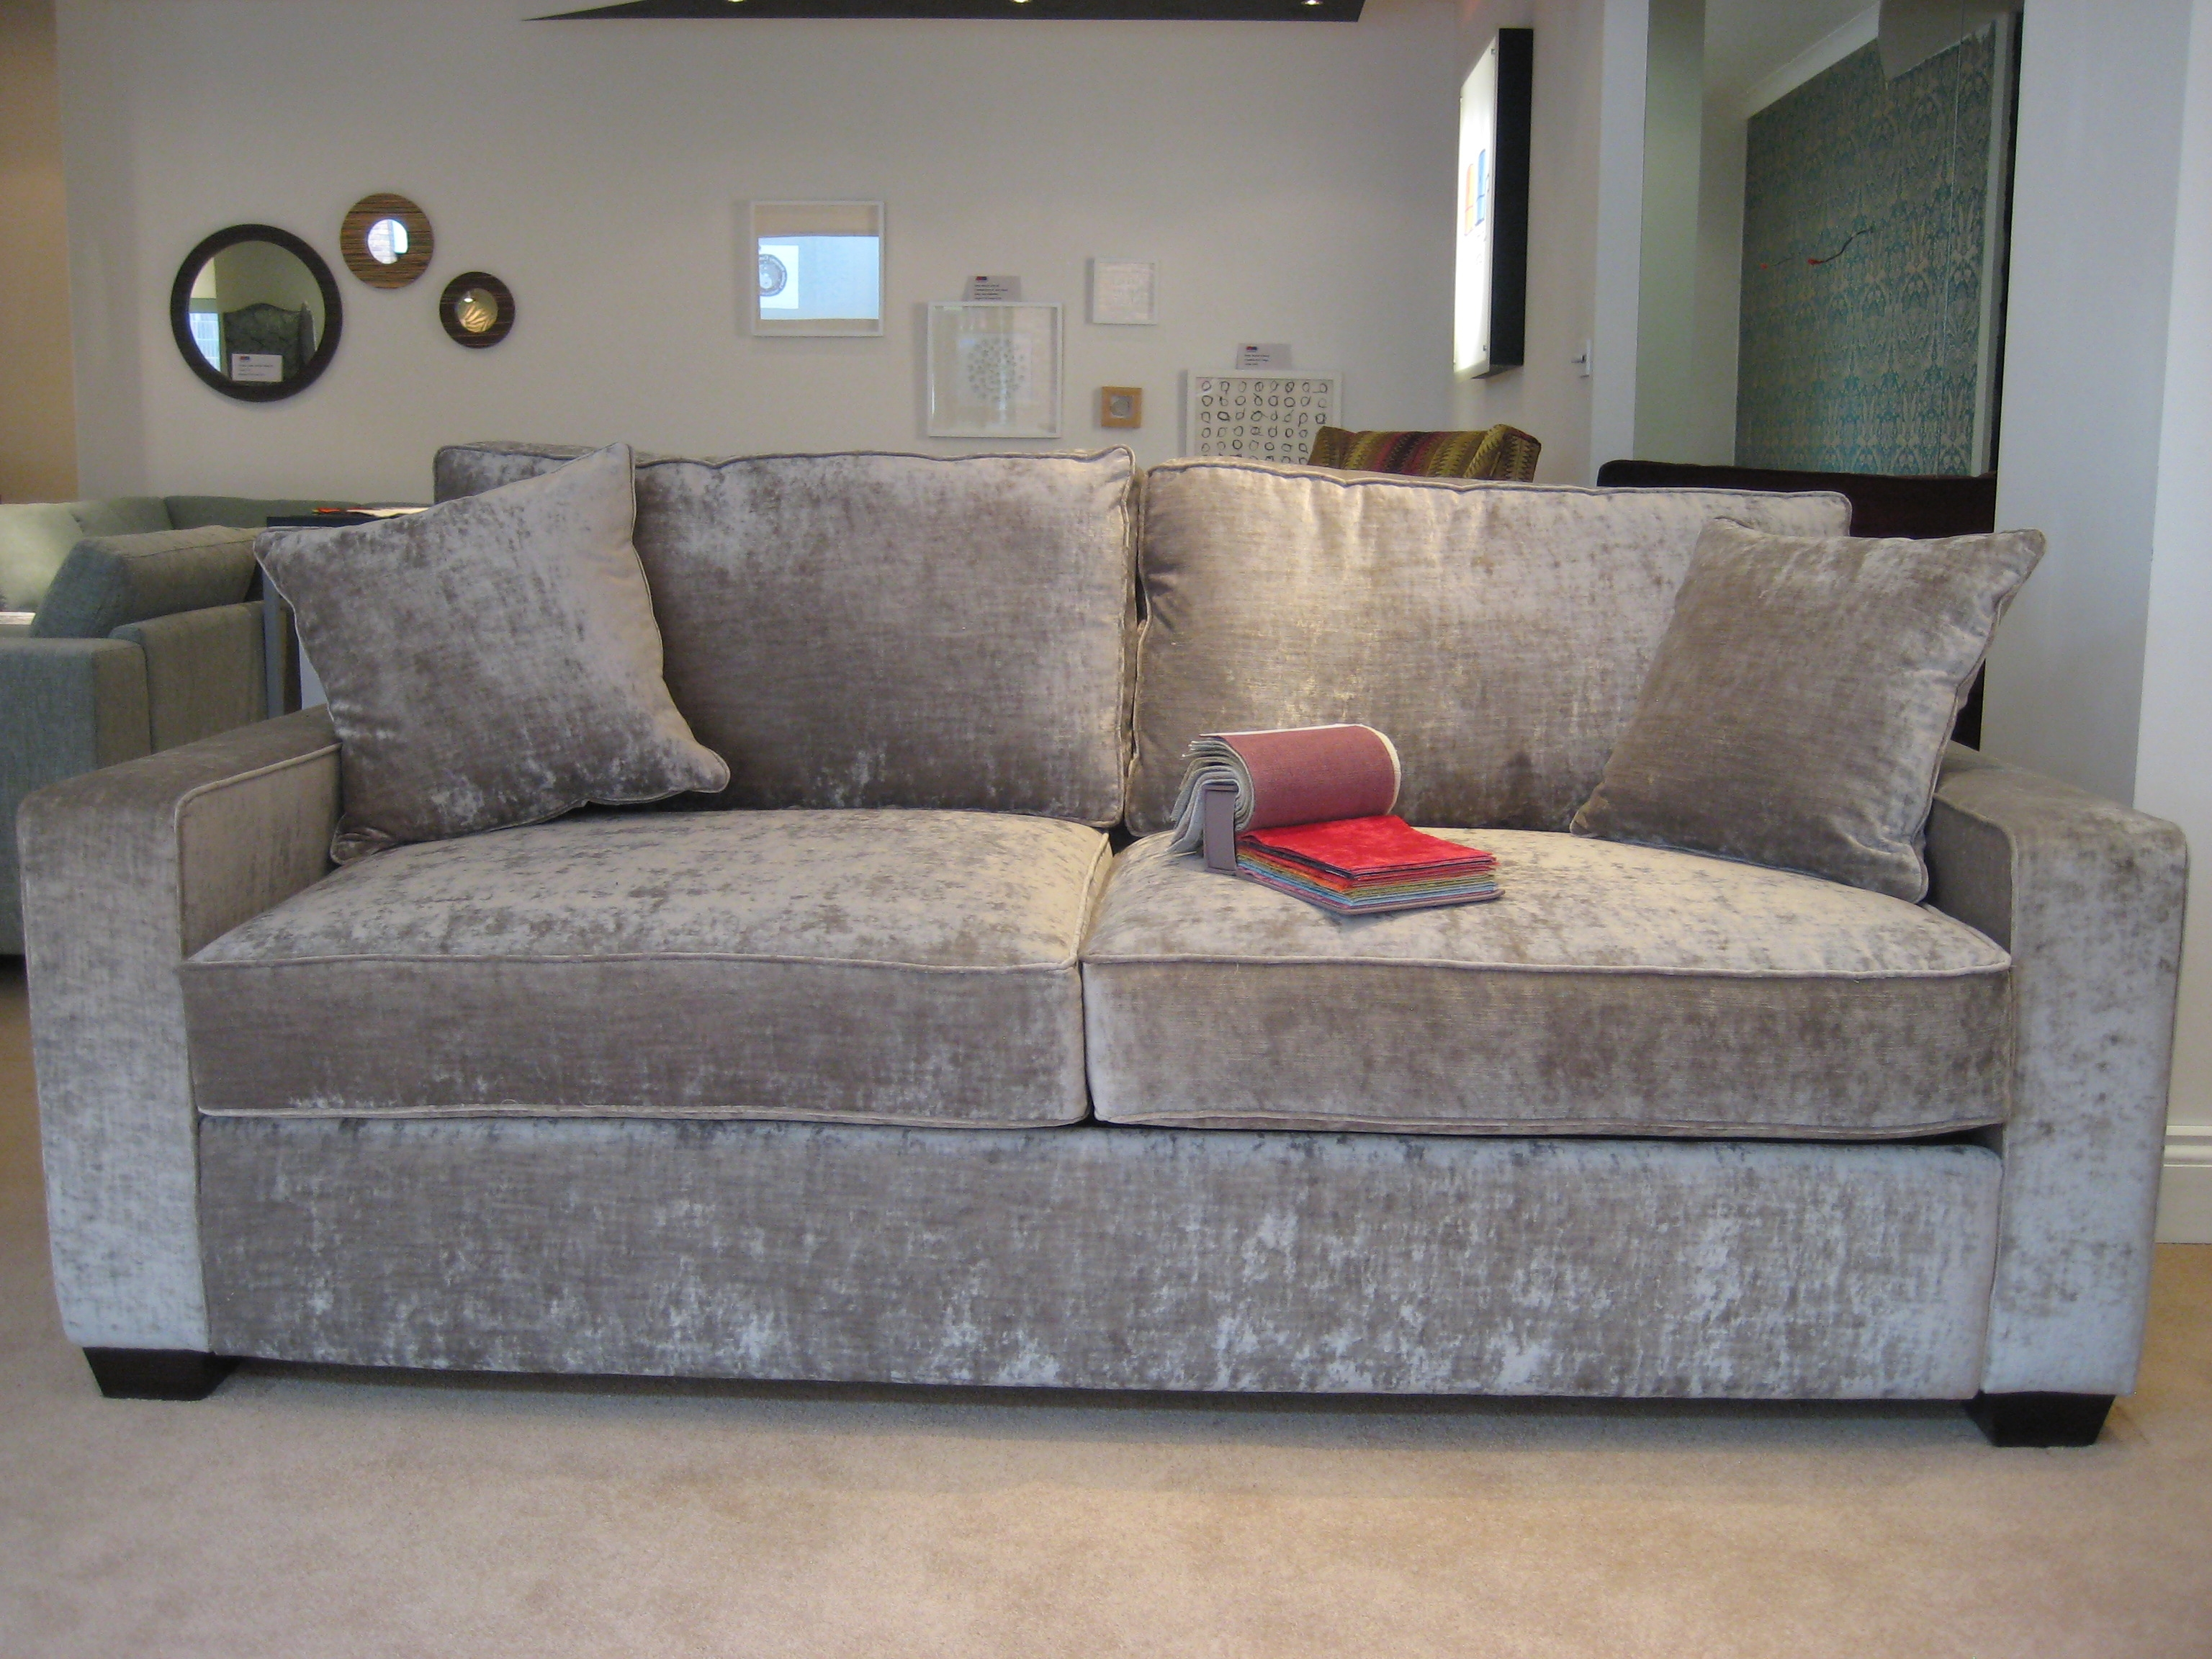 Crushed Velvet Sofa In Living Room Google Search Luxurious With Regard To Bespoke Corner Sofa Beds (Image 10 of 15)